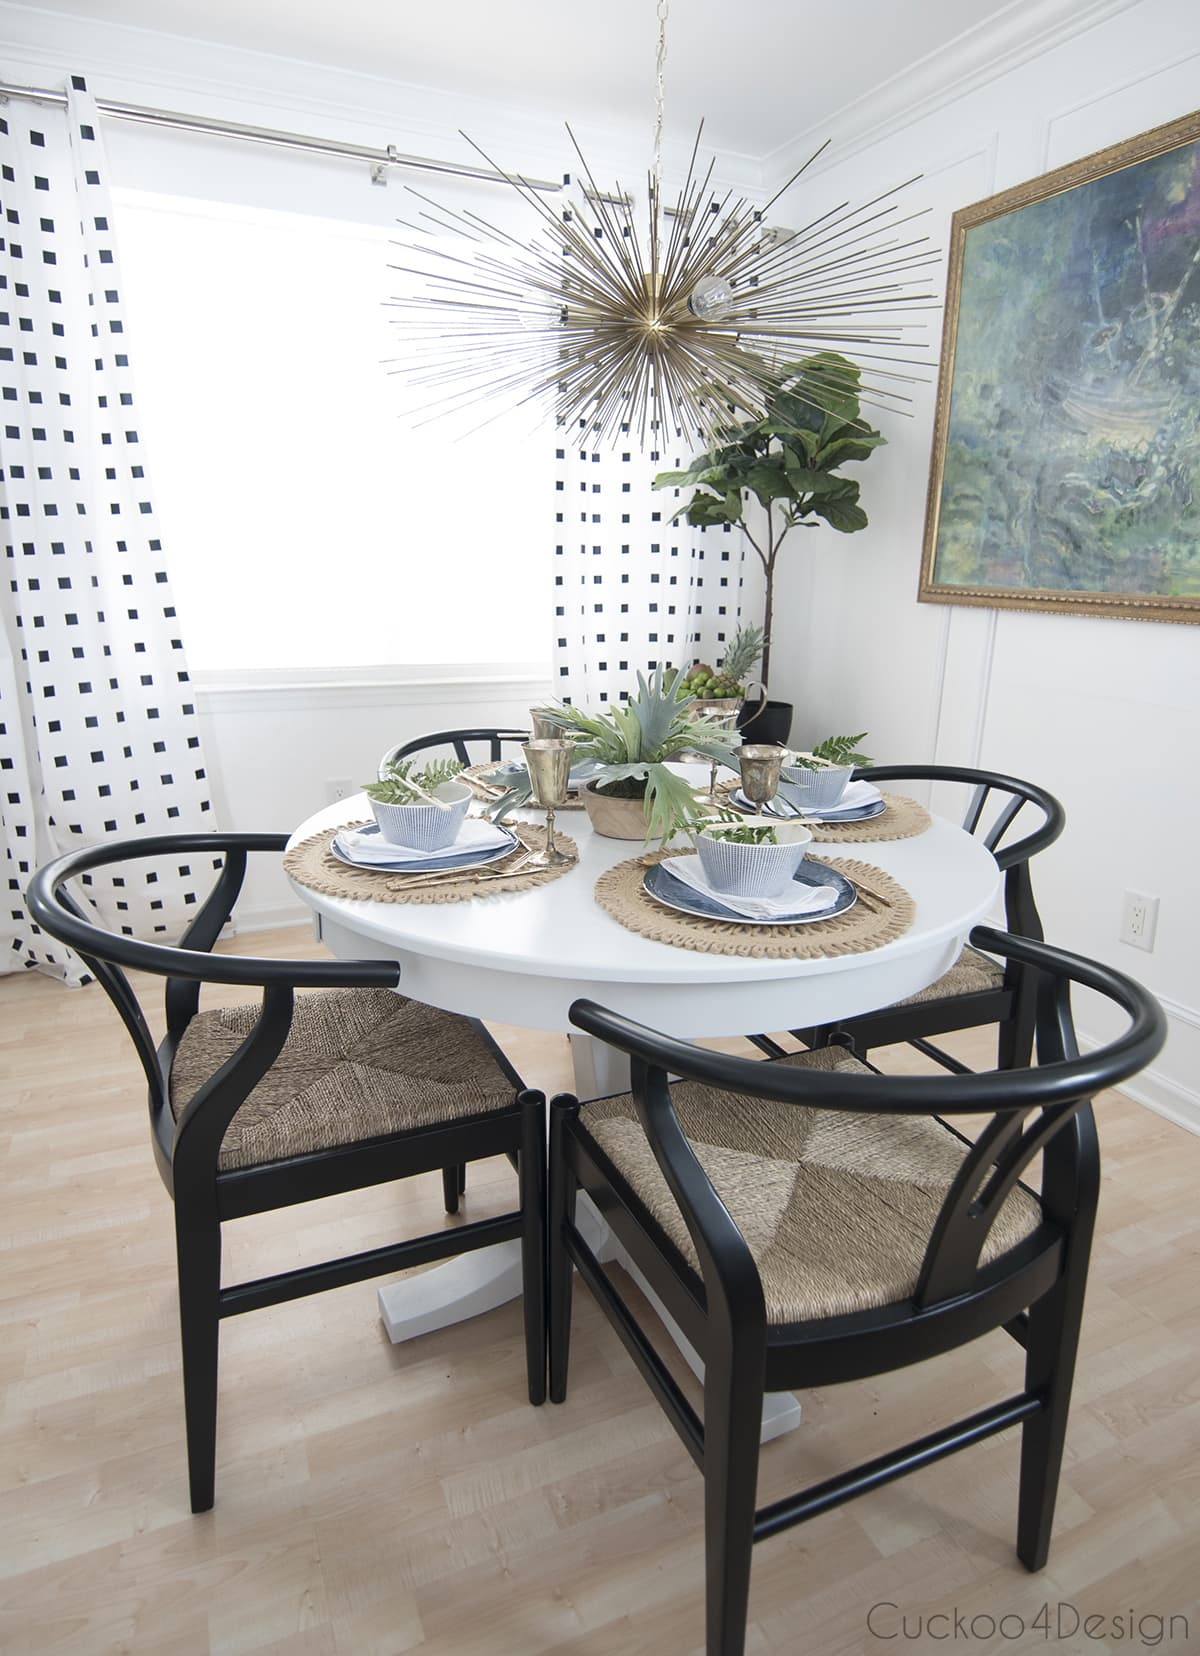 pedestal table with wishbone chairs